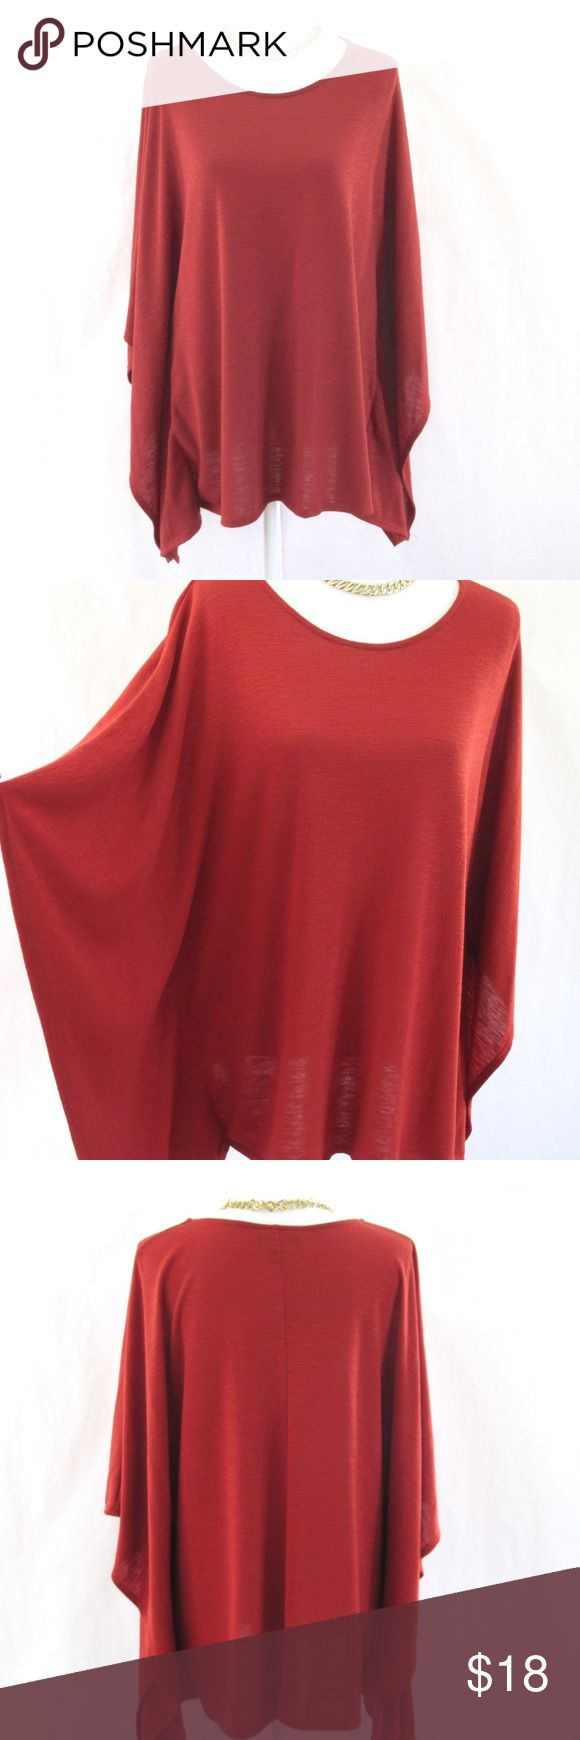 ABG Tunic Poncho Style Top Solid, Dolman/ Batwing Sleeve, Tunic Poncho Style Top  Round Neckline Knit Jersey polyester material Deep Burnt Orange Color Very Gently worn a few times (a little bit of light fuzziness in front (see pic); no damage Size L- but has a loose fit design and looks great on Sizes 12/14/16 and falls below hips ABG Tops Tunics